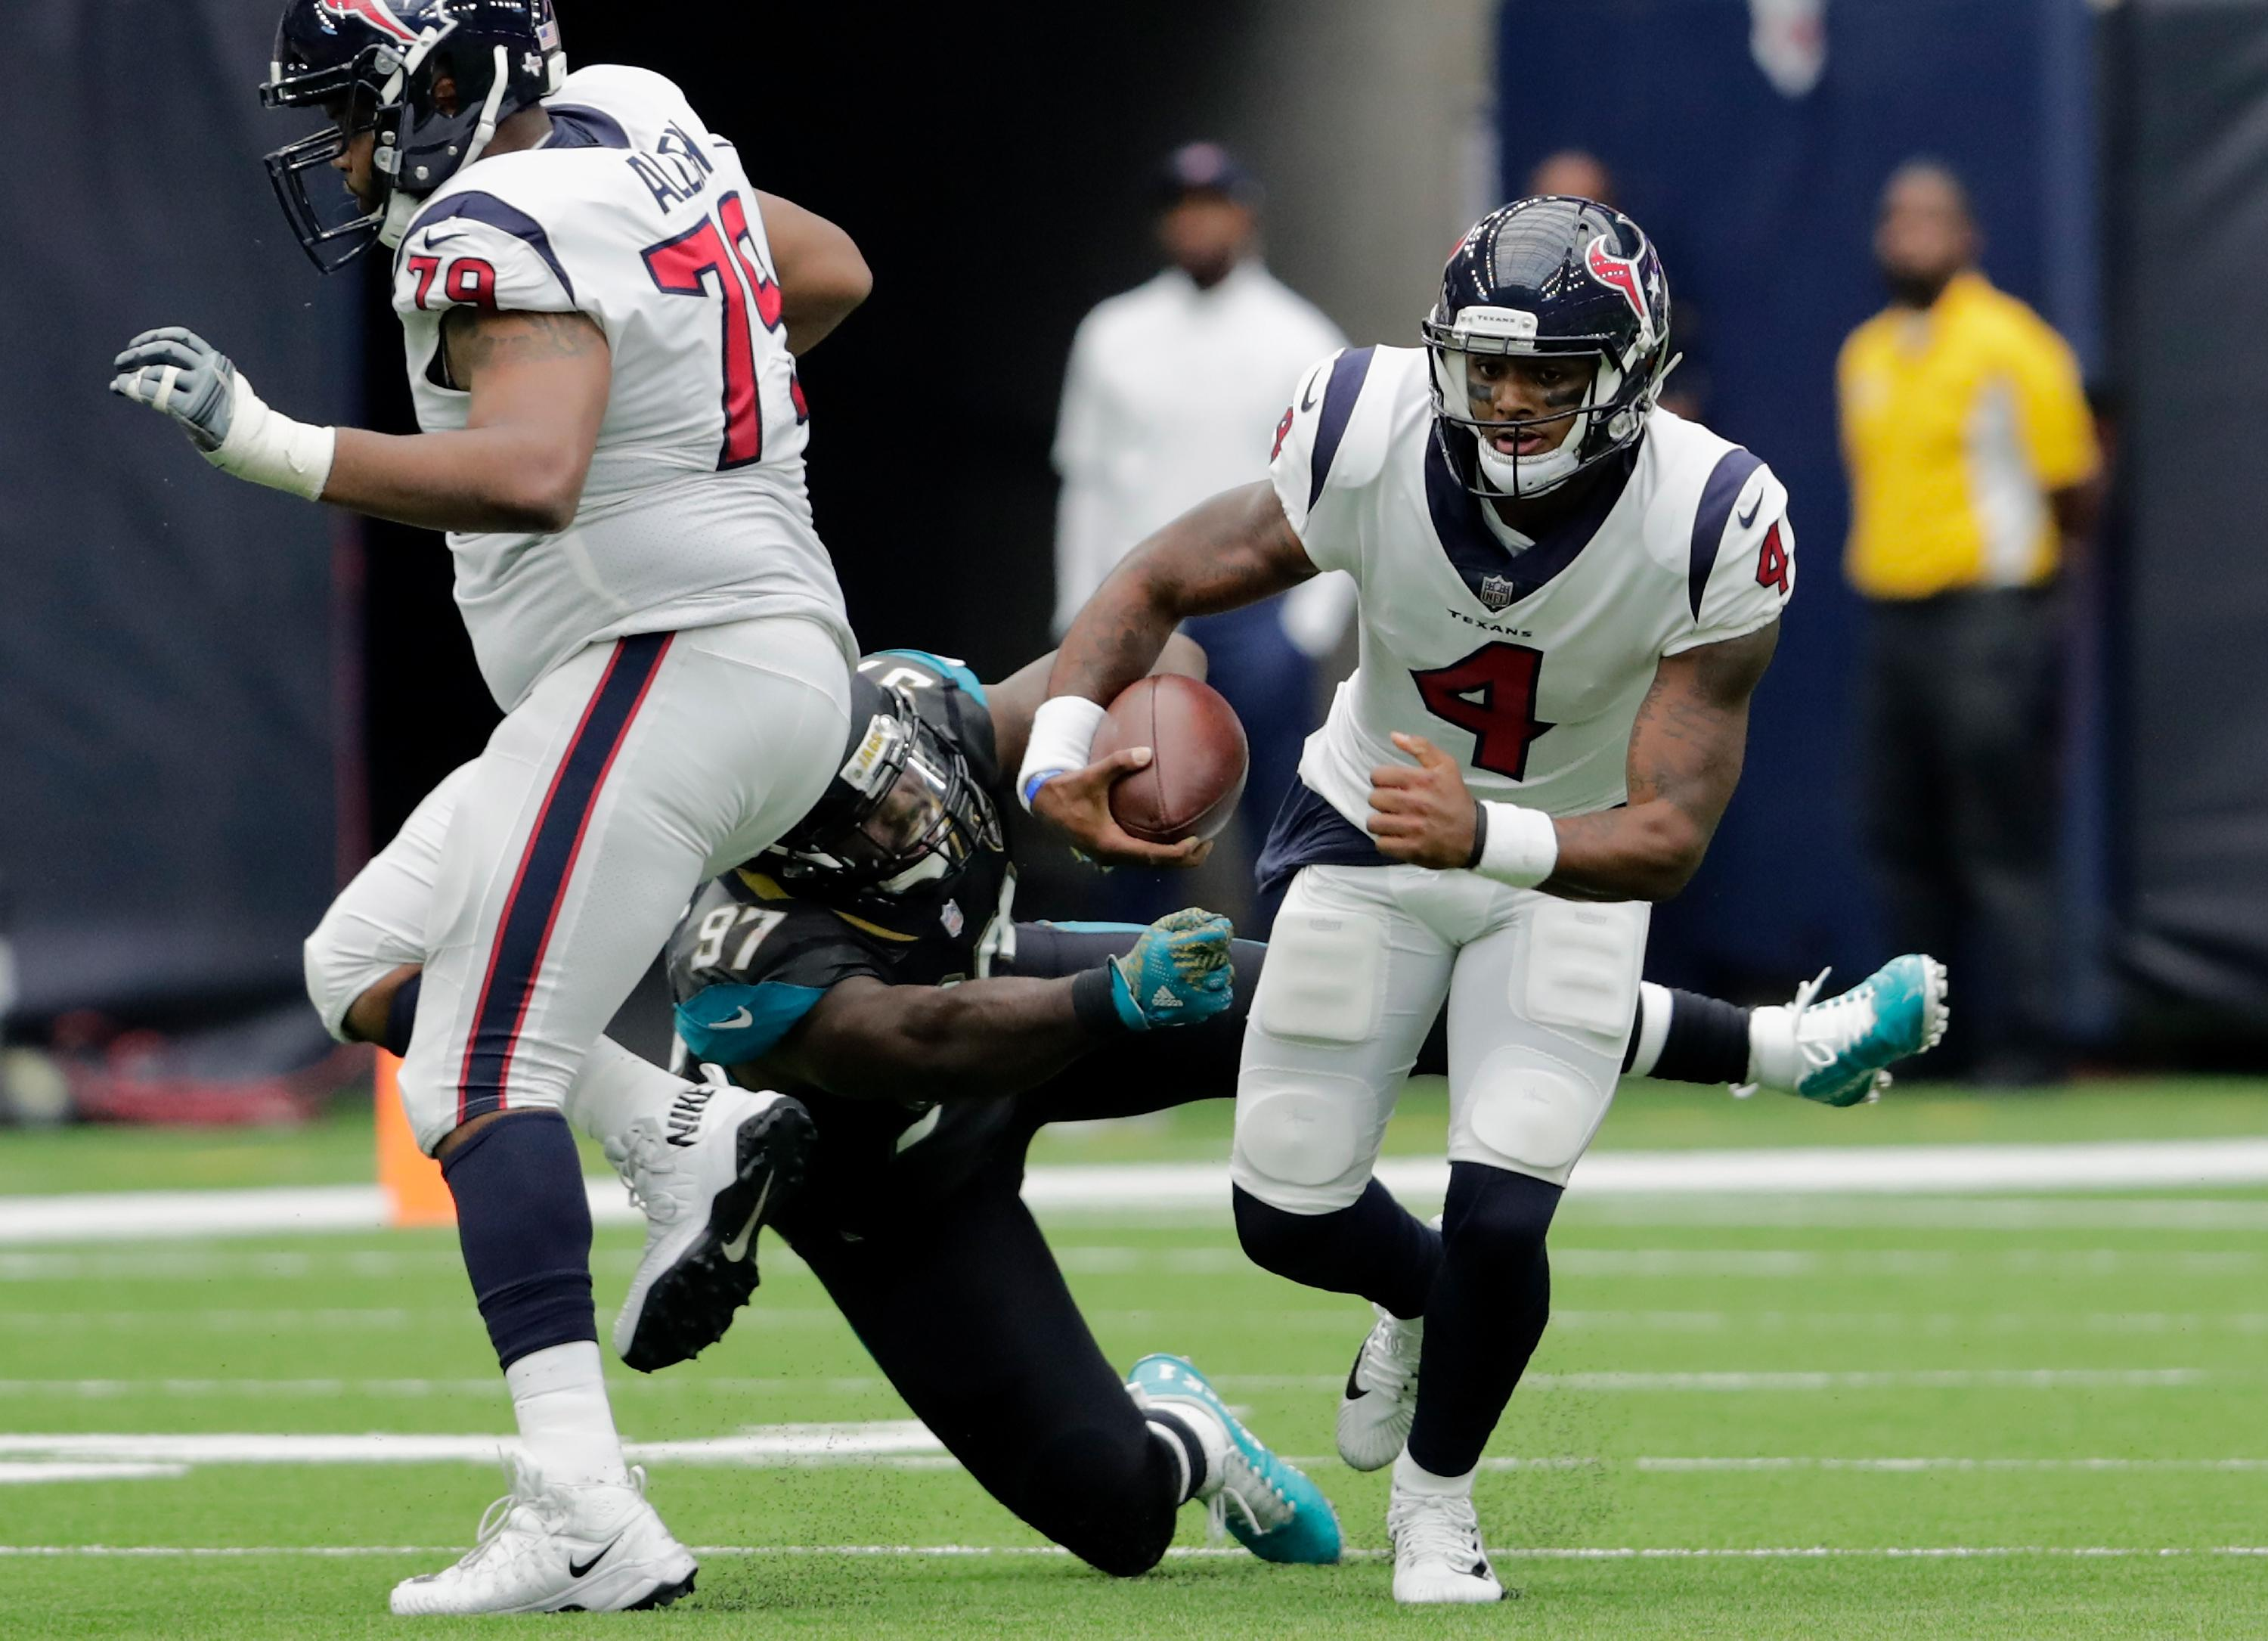 DeShaun Watson Expected to Start For Texans